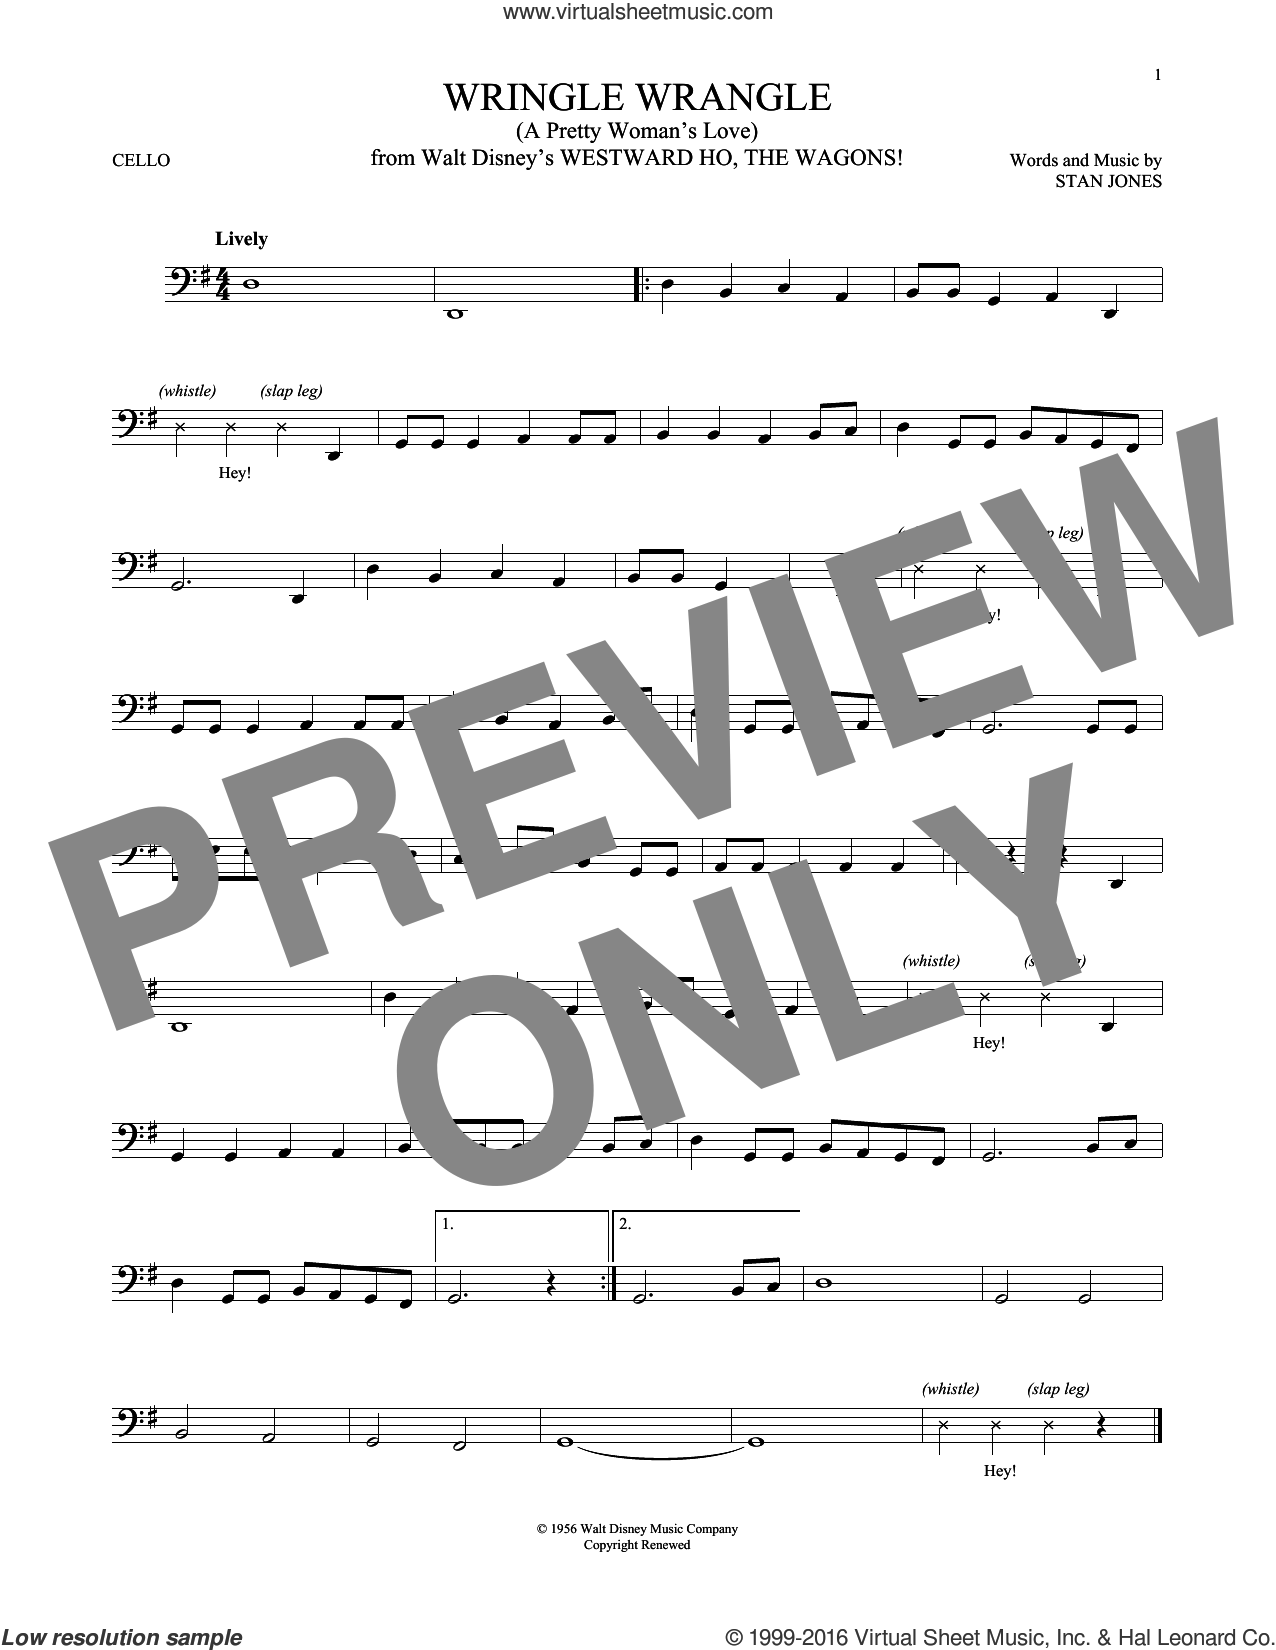 Wringle Wrangle (A Pretty Woman's Love) sheet music for cello solo by Stan Jones, intermediate skill level